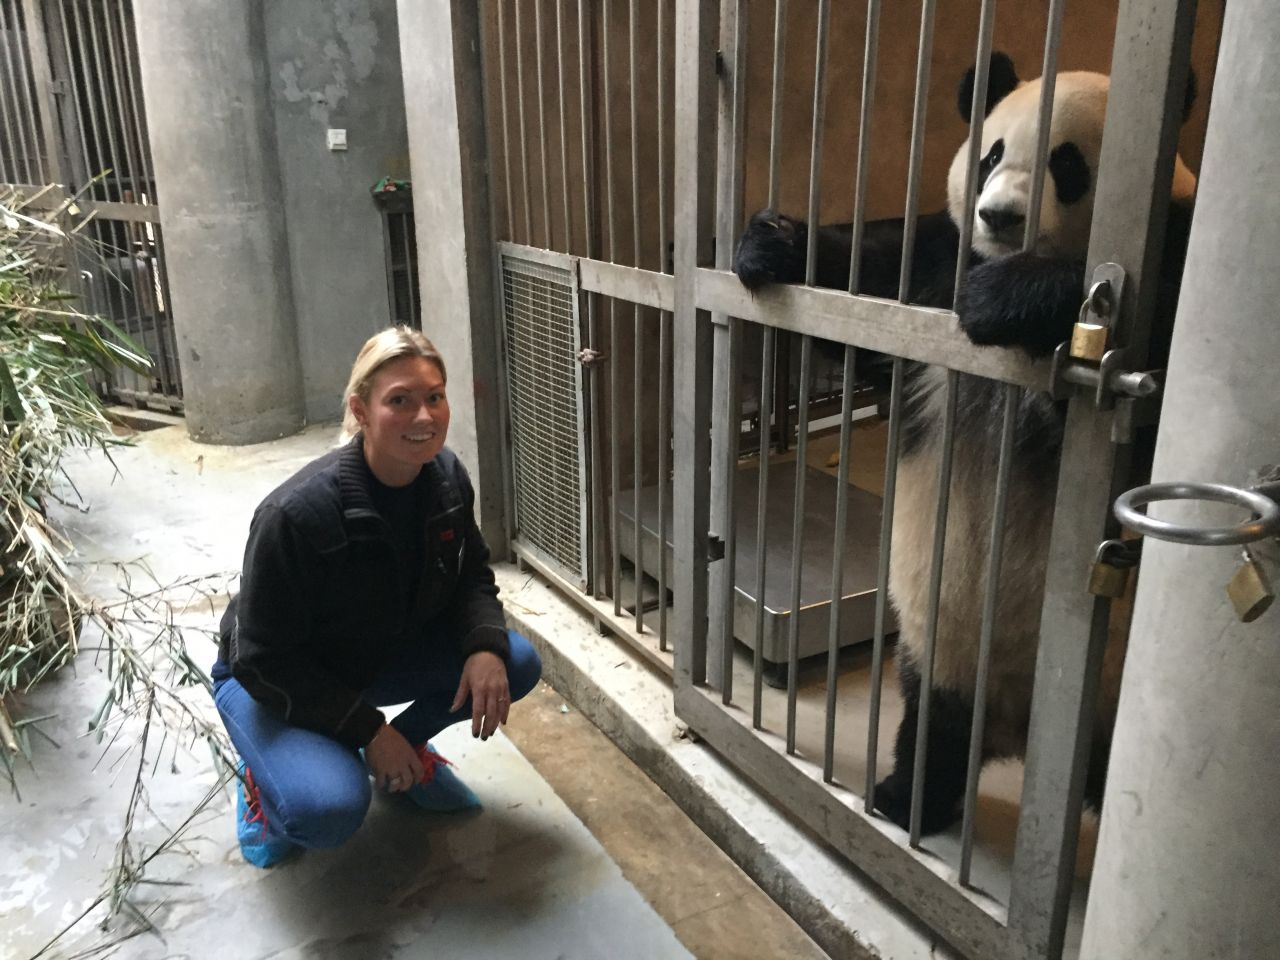 Anita Haupt Holm, who is responsible for feeding the animals at Copenhagen Zoo, has developed a new method of thawing bamboo shoots that the giant pandas have accepted.